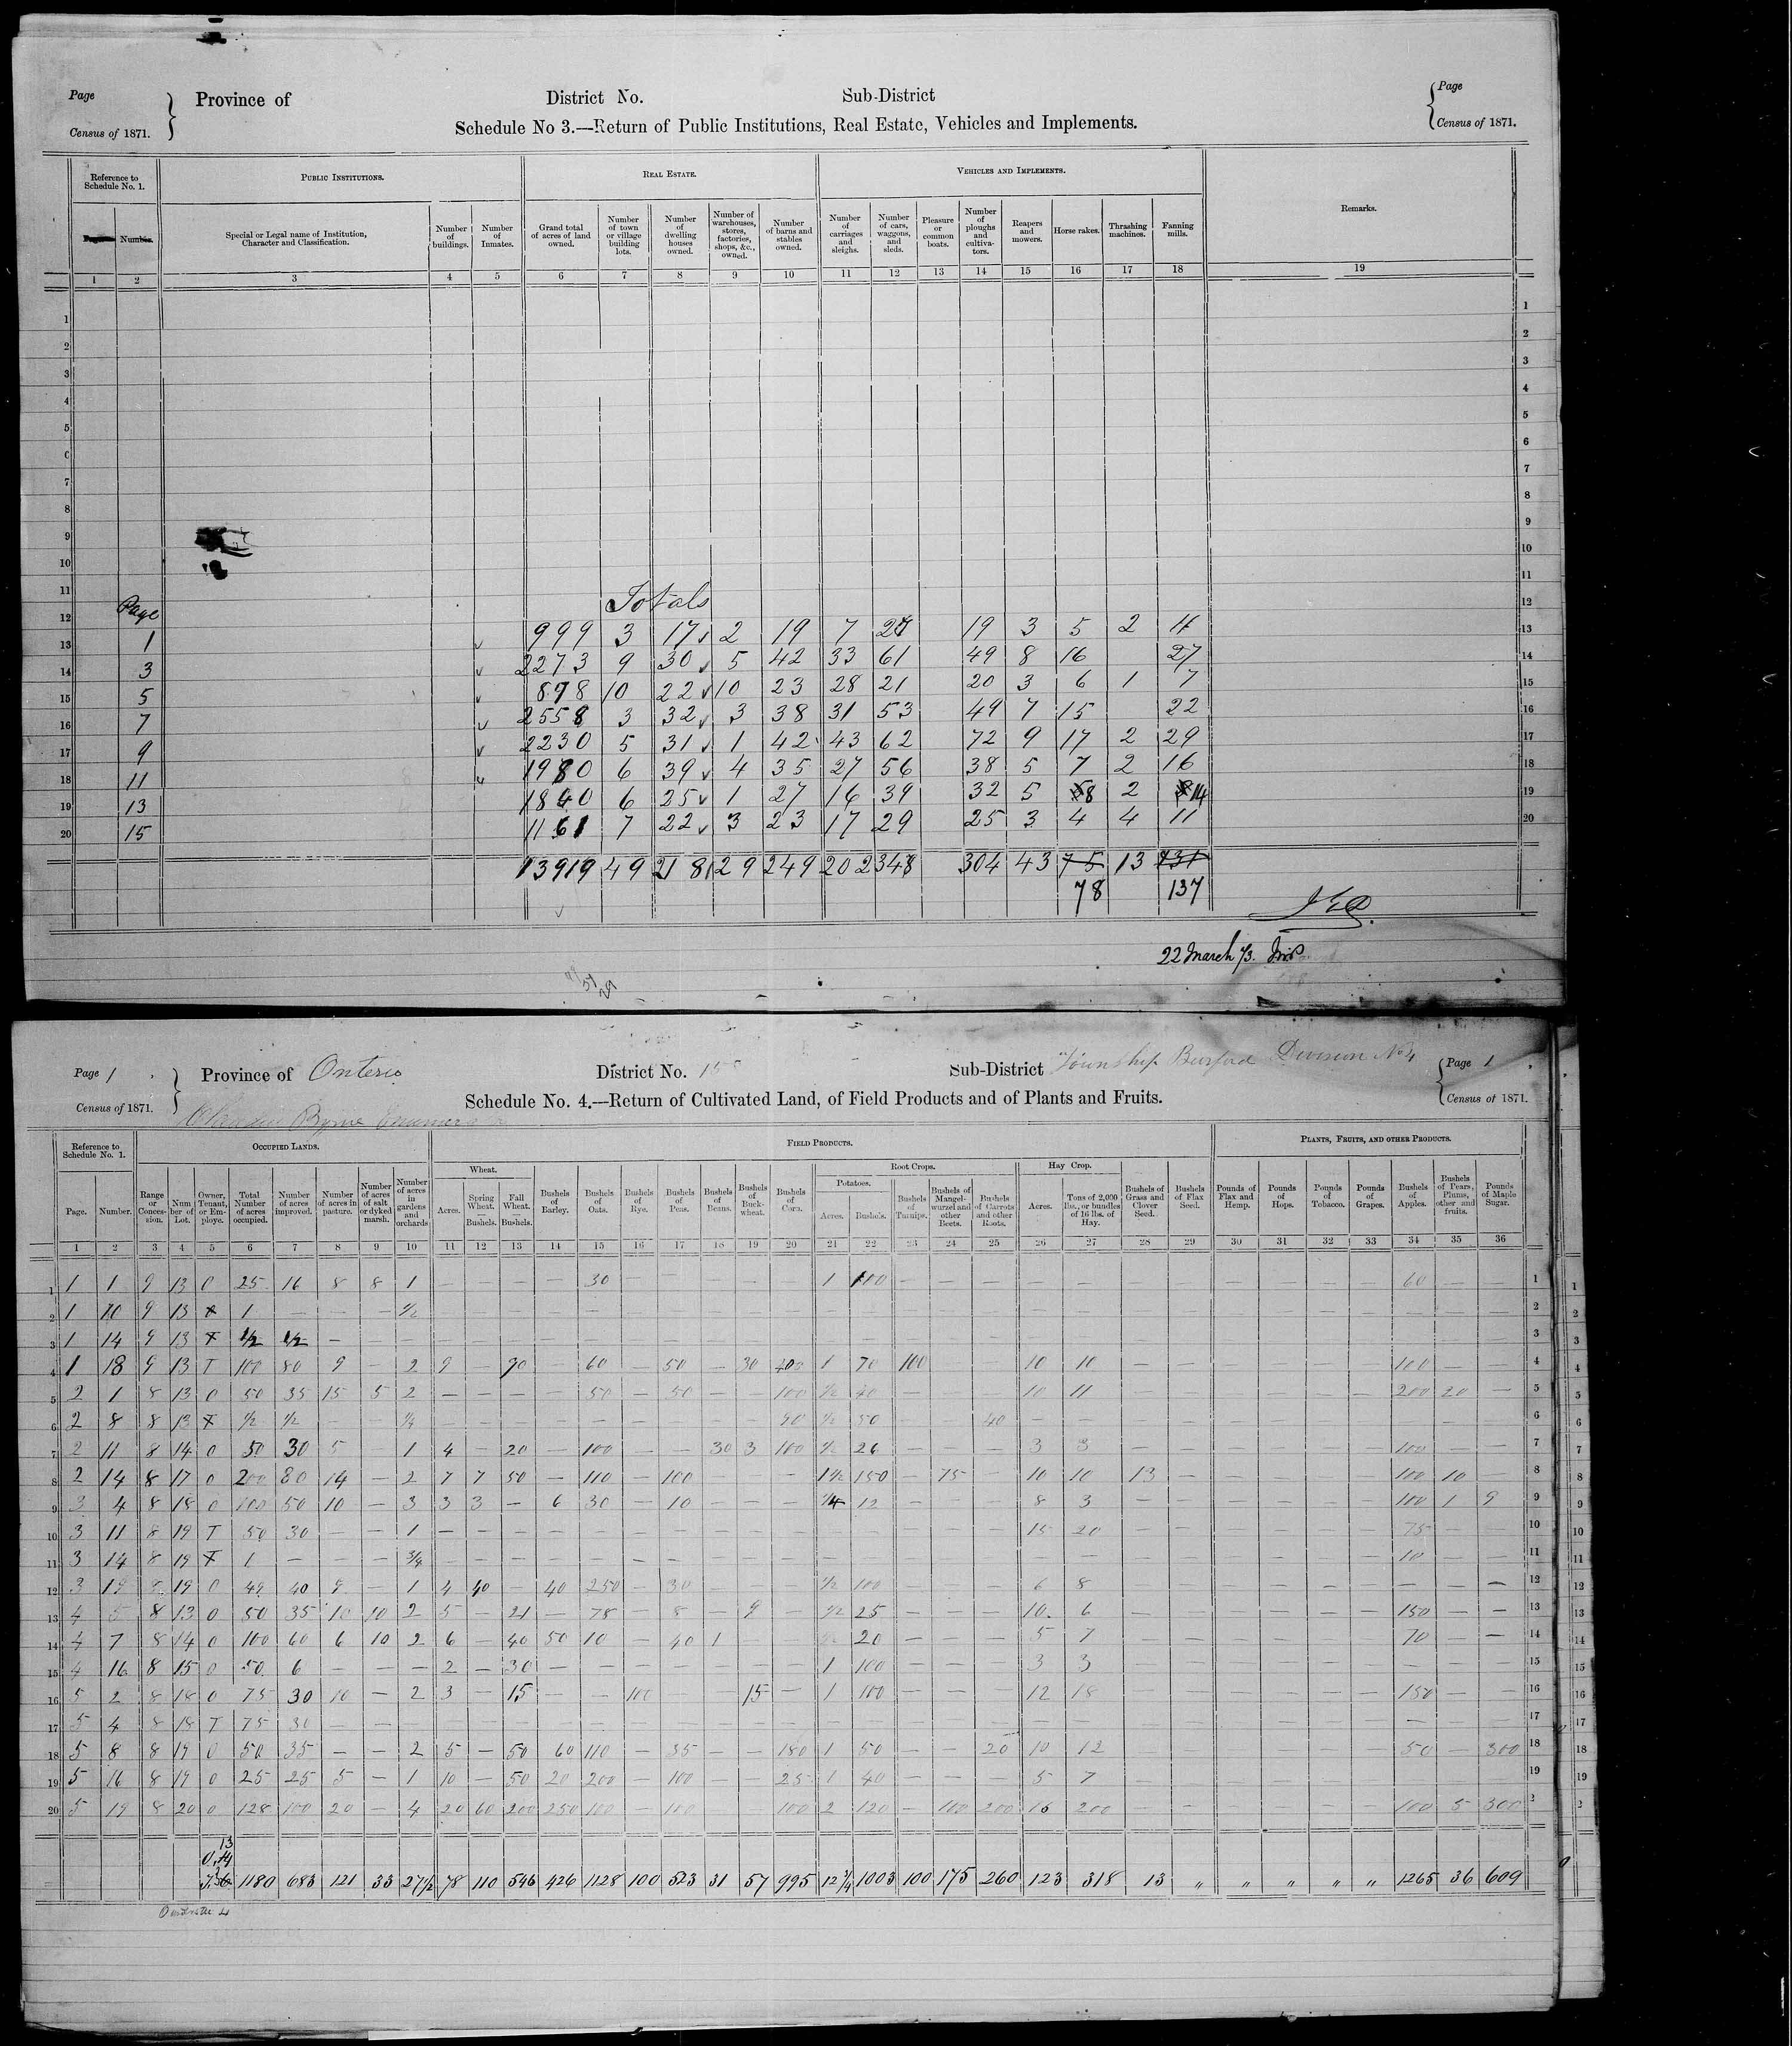 Title: Census of Canada, 1871 - Mikan Number: 142105 - Microform: c-9914